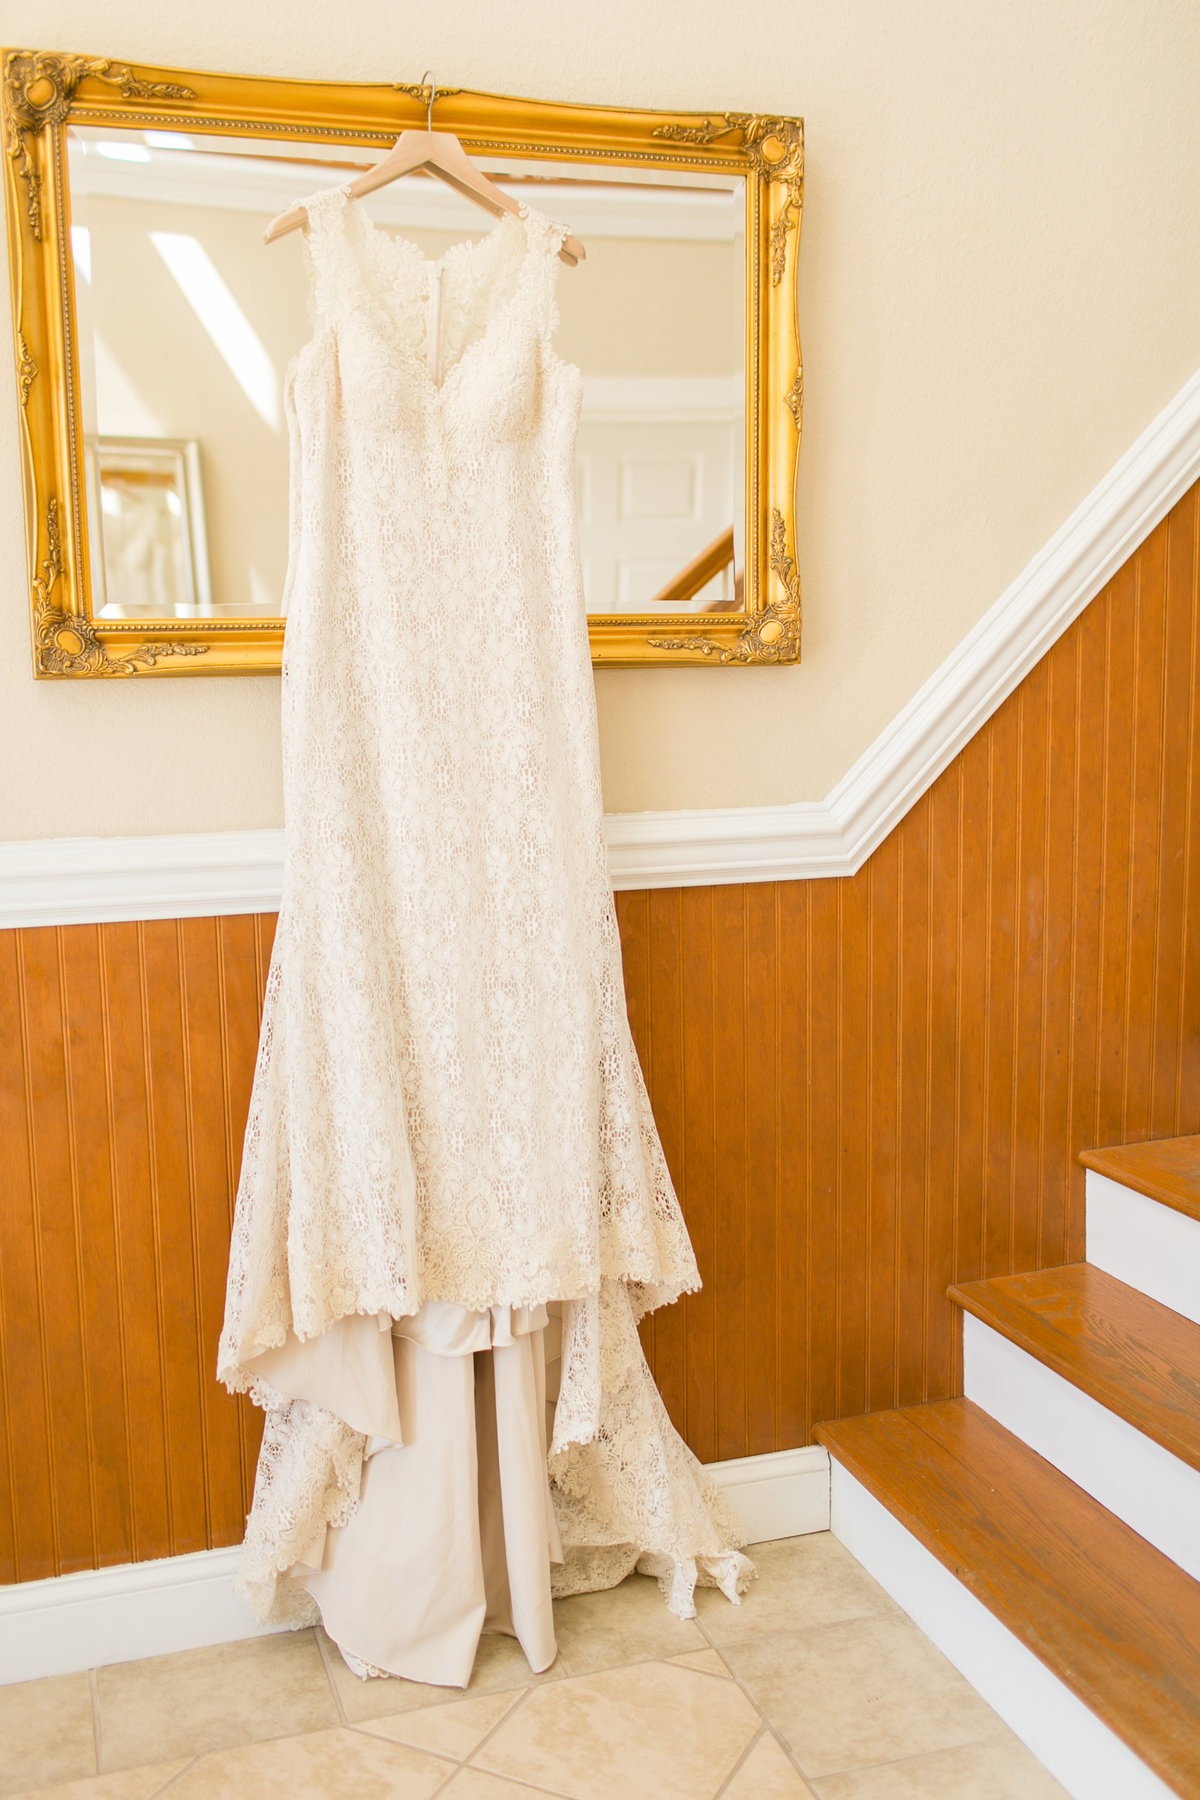 currituck-club-wedding-obx-outer-banks-wedding-photographer-amanda-hedgepeth-2